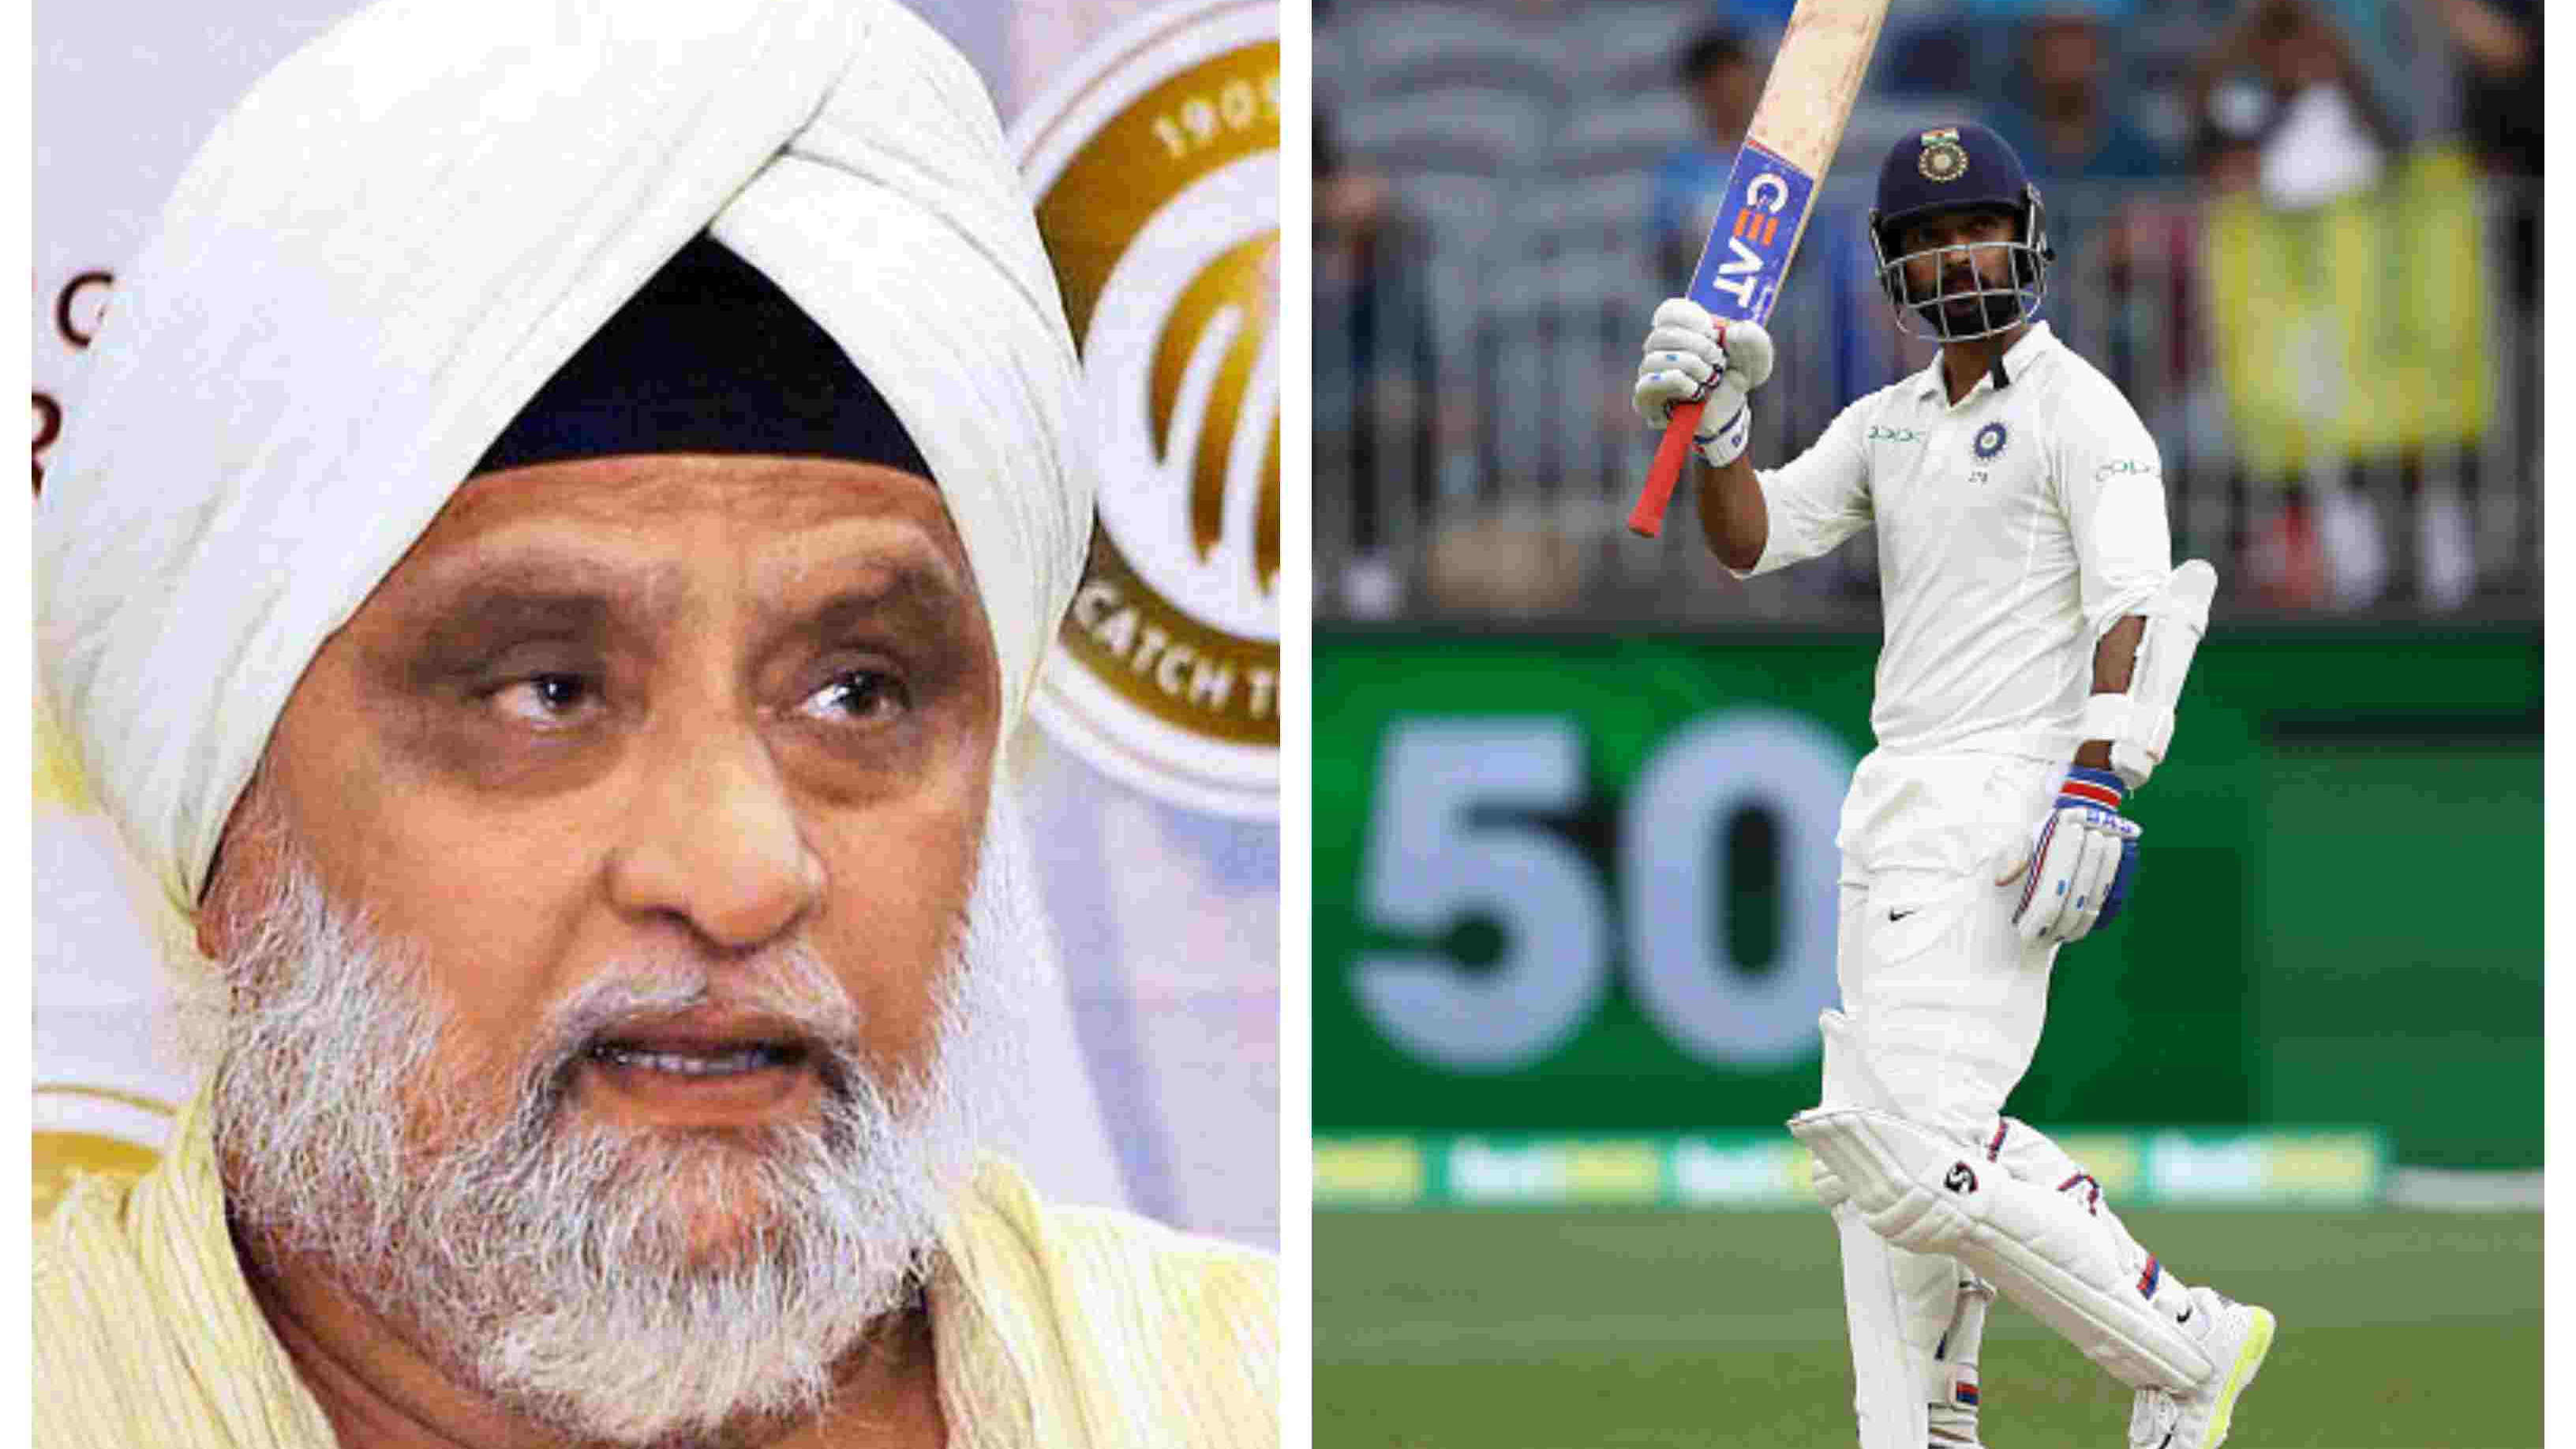 AUS v IND 2018-19: Bishan Singh Bedi impressed with Ajinkya Rahane's attacking fifty in Perth